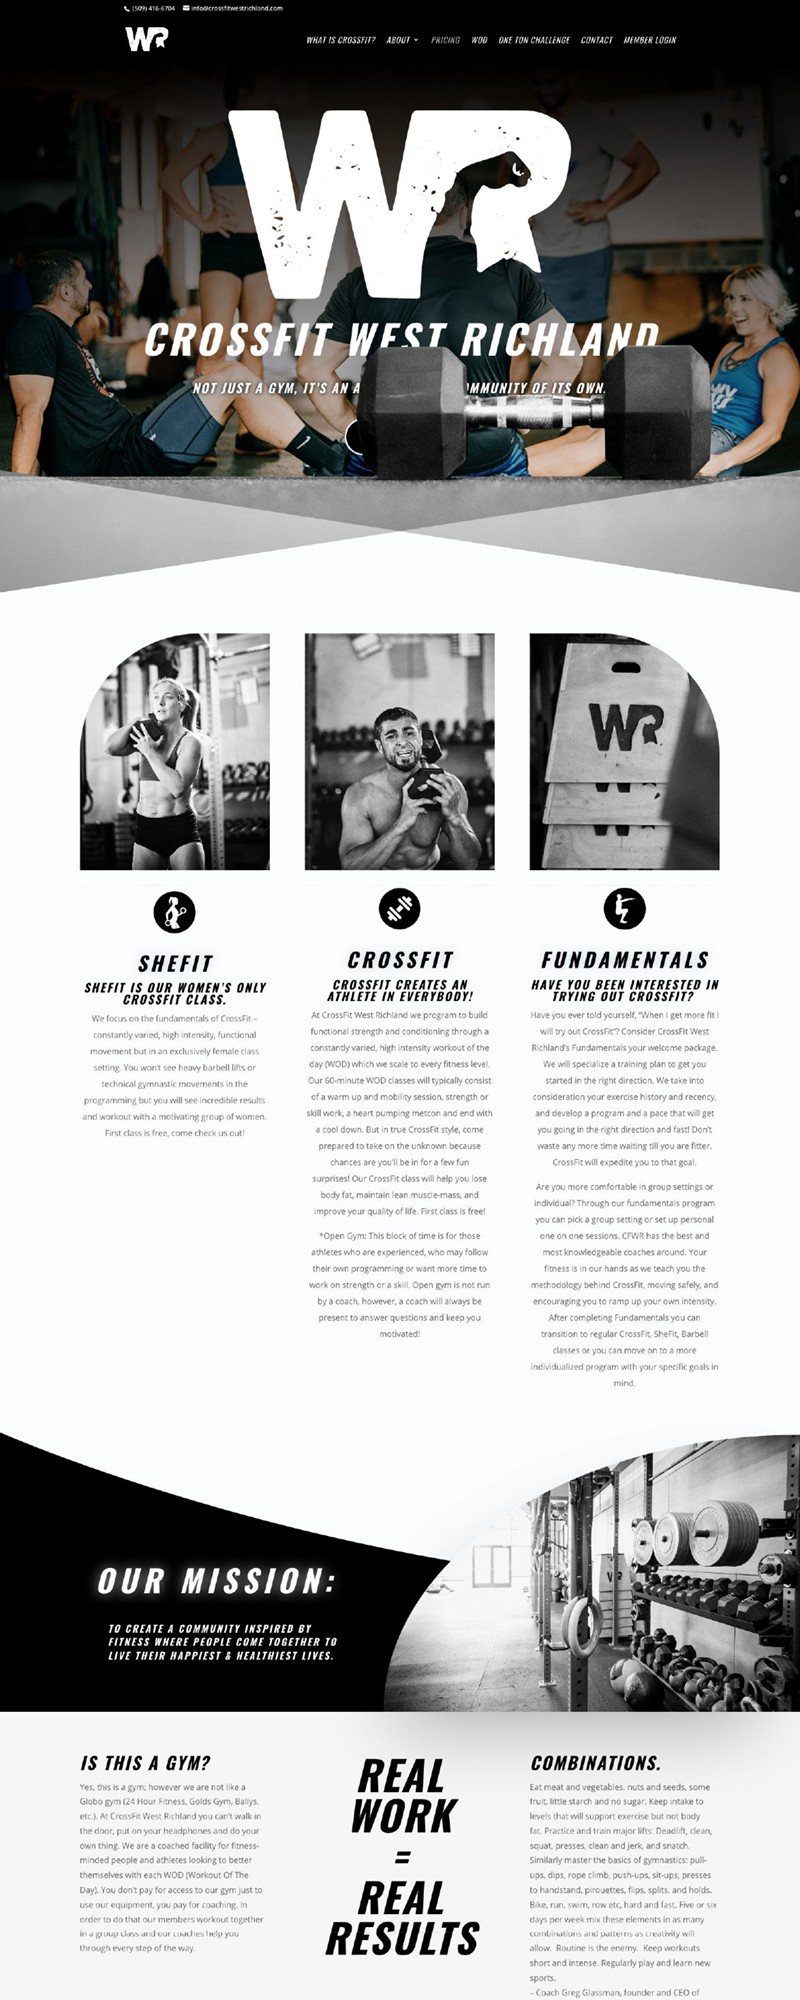 CrossFitWR website - Creative Services